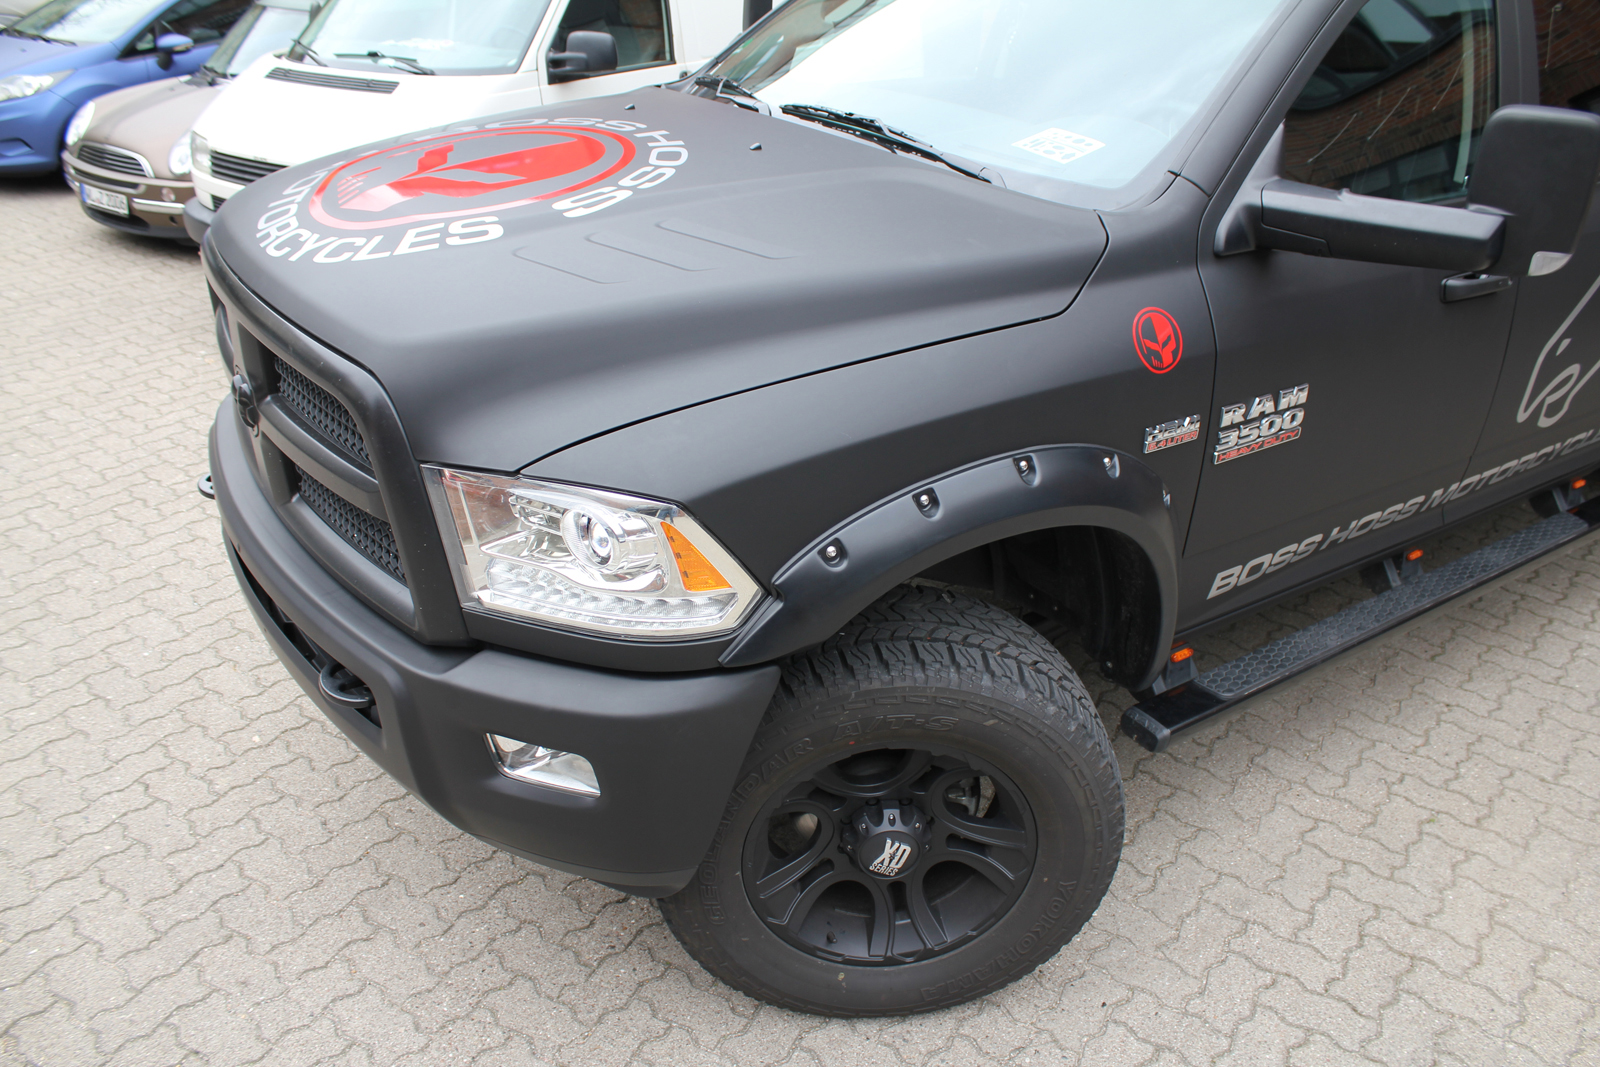 DODGE_RAM_CAR-WRAPPING_SCHWARZ_MATT_BOSS_HOSS_MOTORCYCLES_BRANDING_06